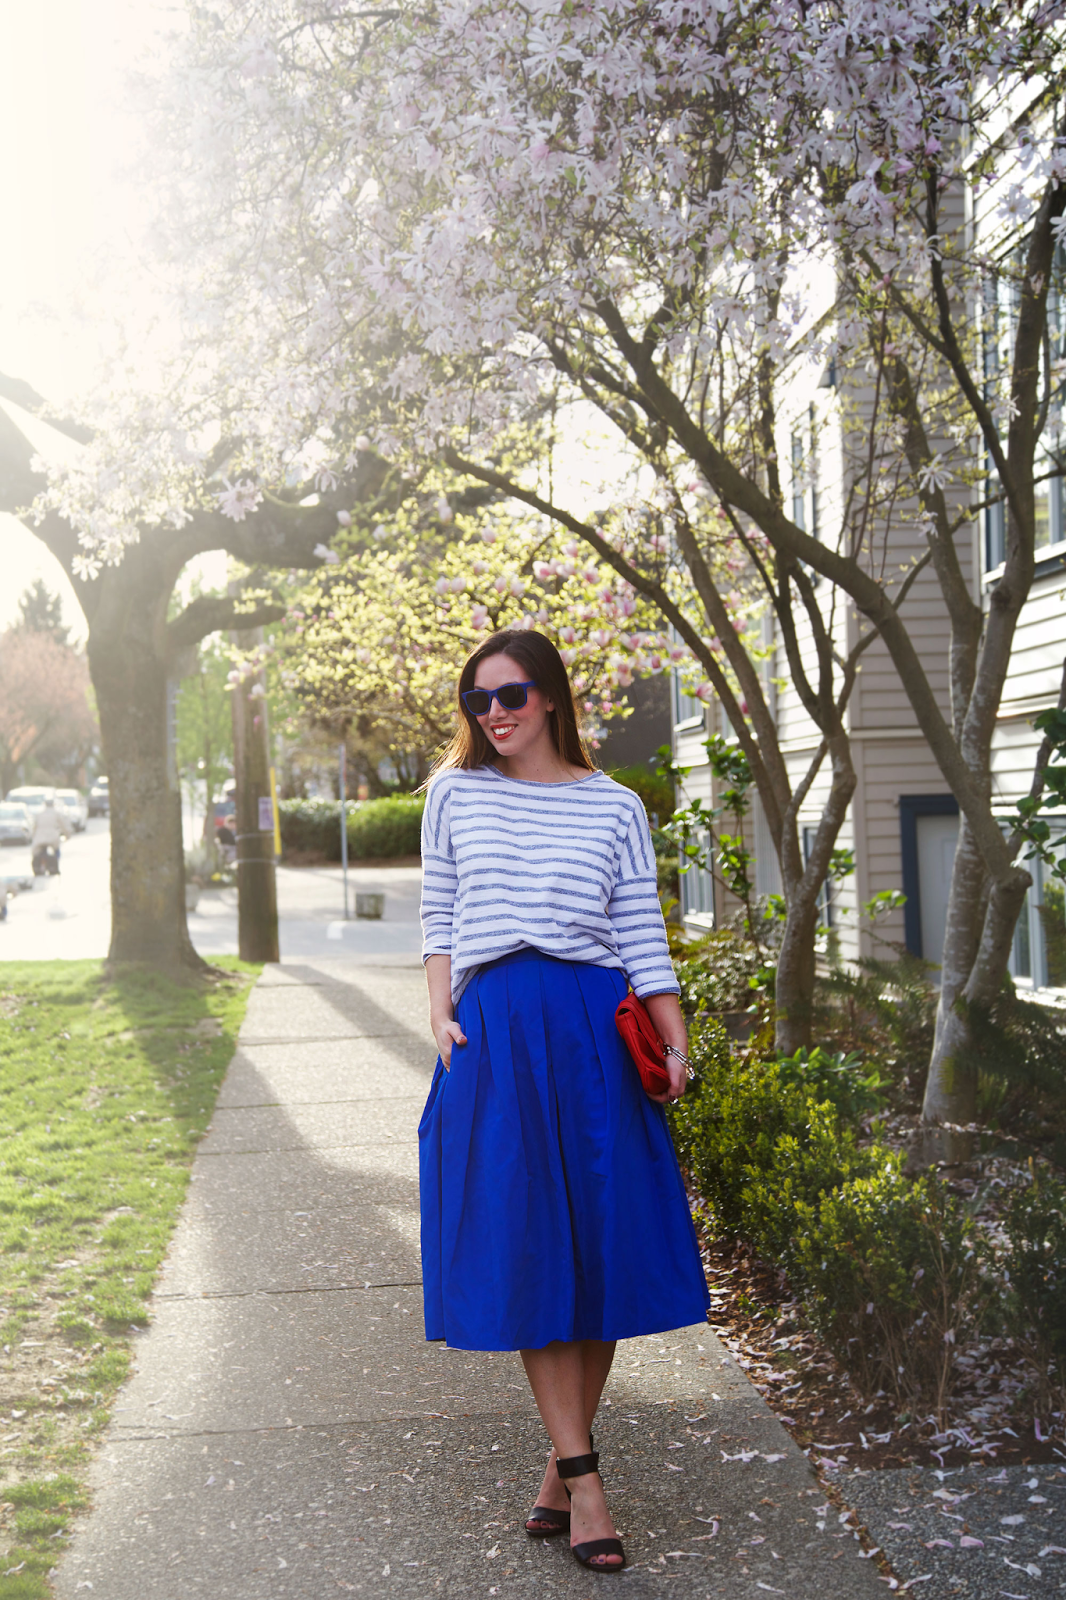 424-fifth-skirt-sweater-to-vogue-or-bust-8-4